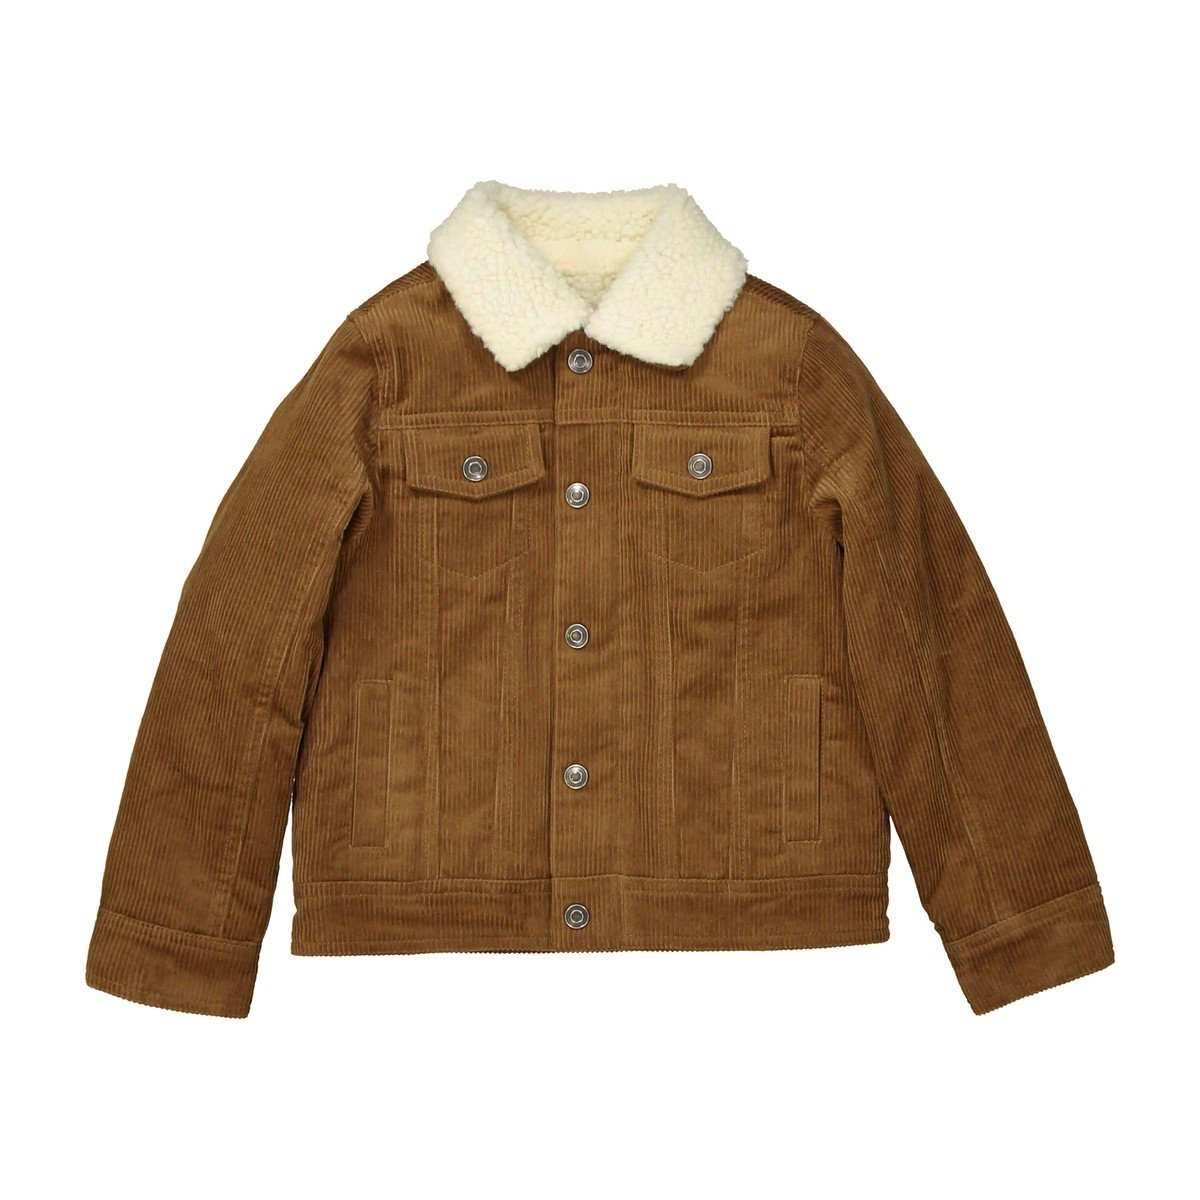 La Redoute Collections Big Boys Velour Jacket Sherpa Collar, 3-12 Years